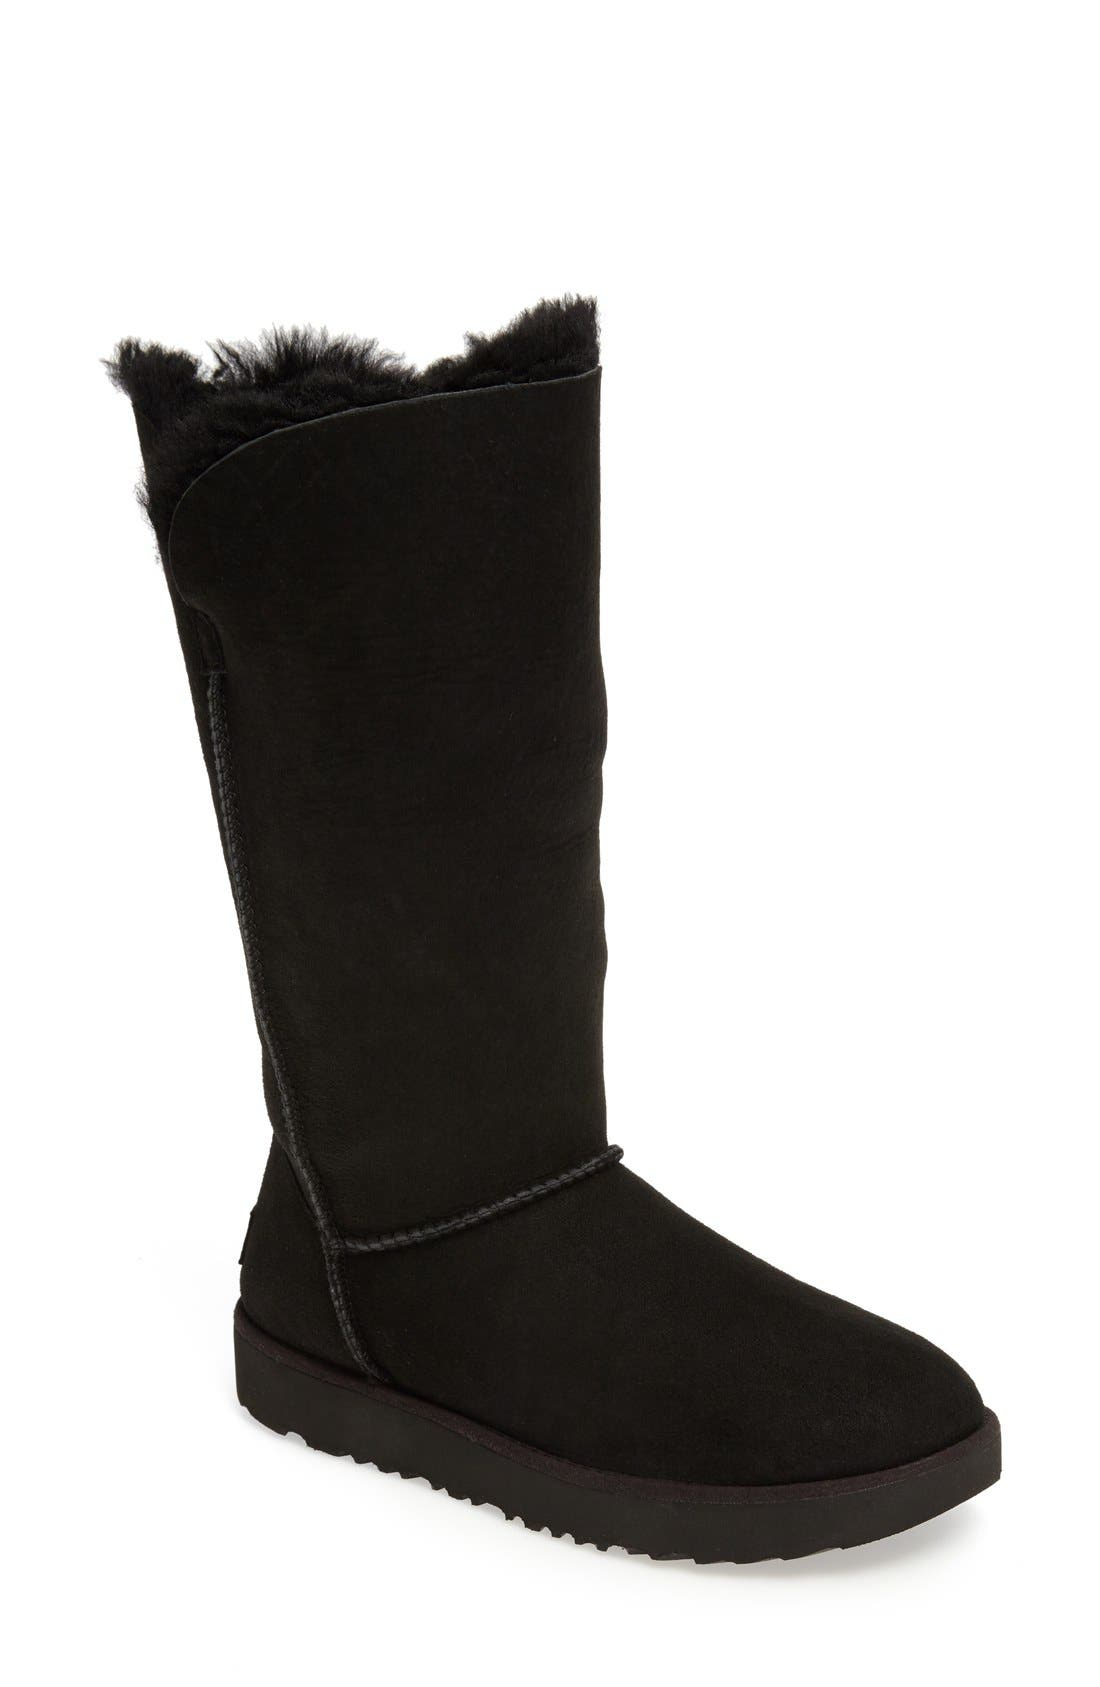 Alternate Image 1 Selected - UGG® Classic Cuff Tall Boot (Women)